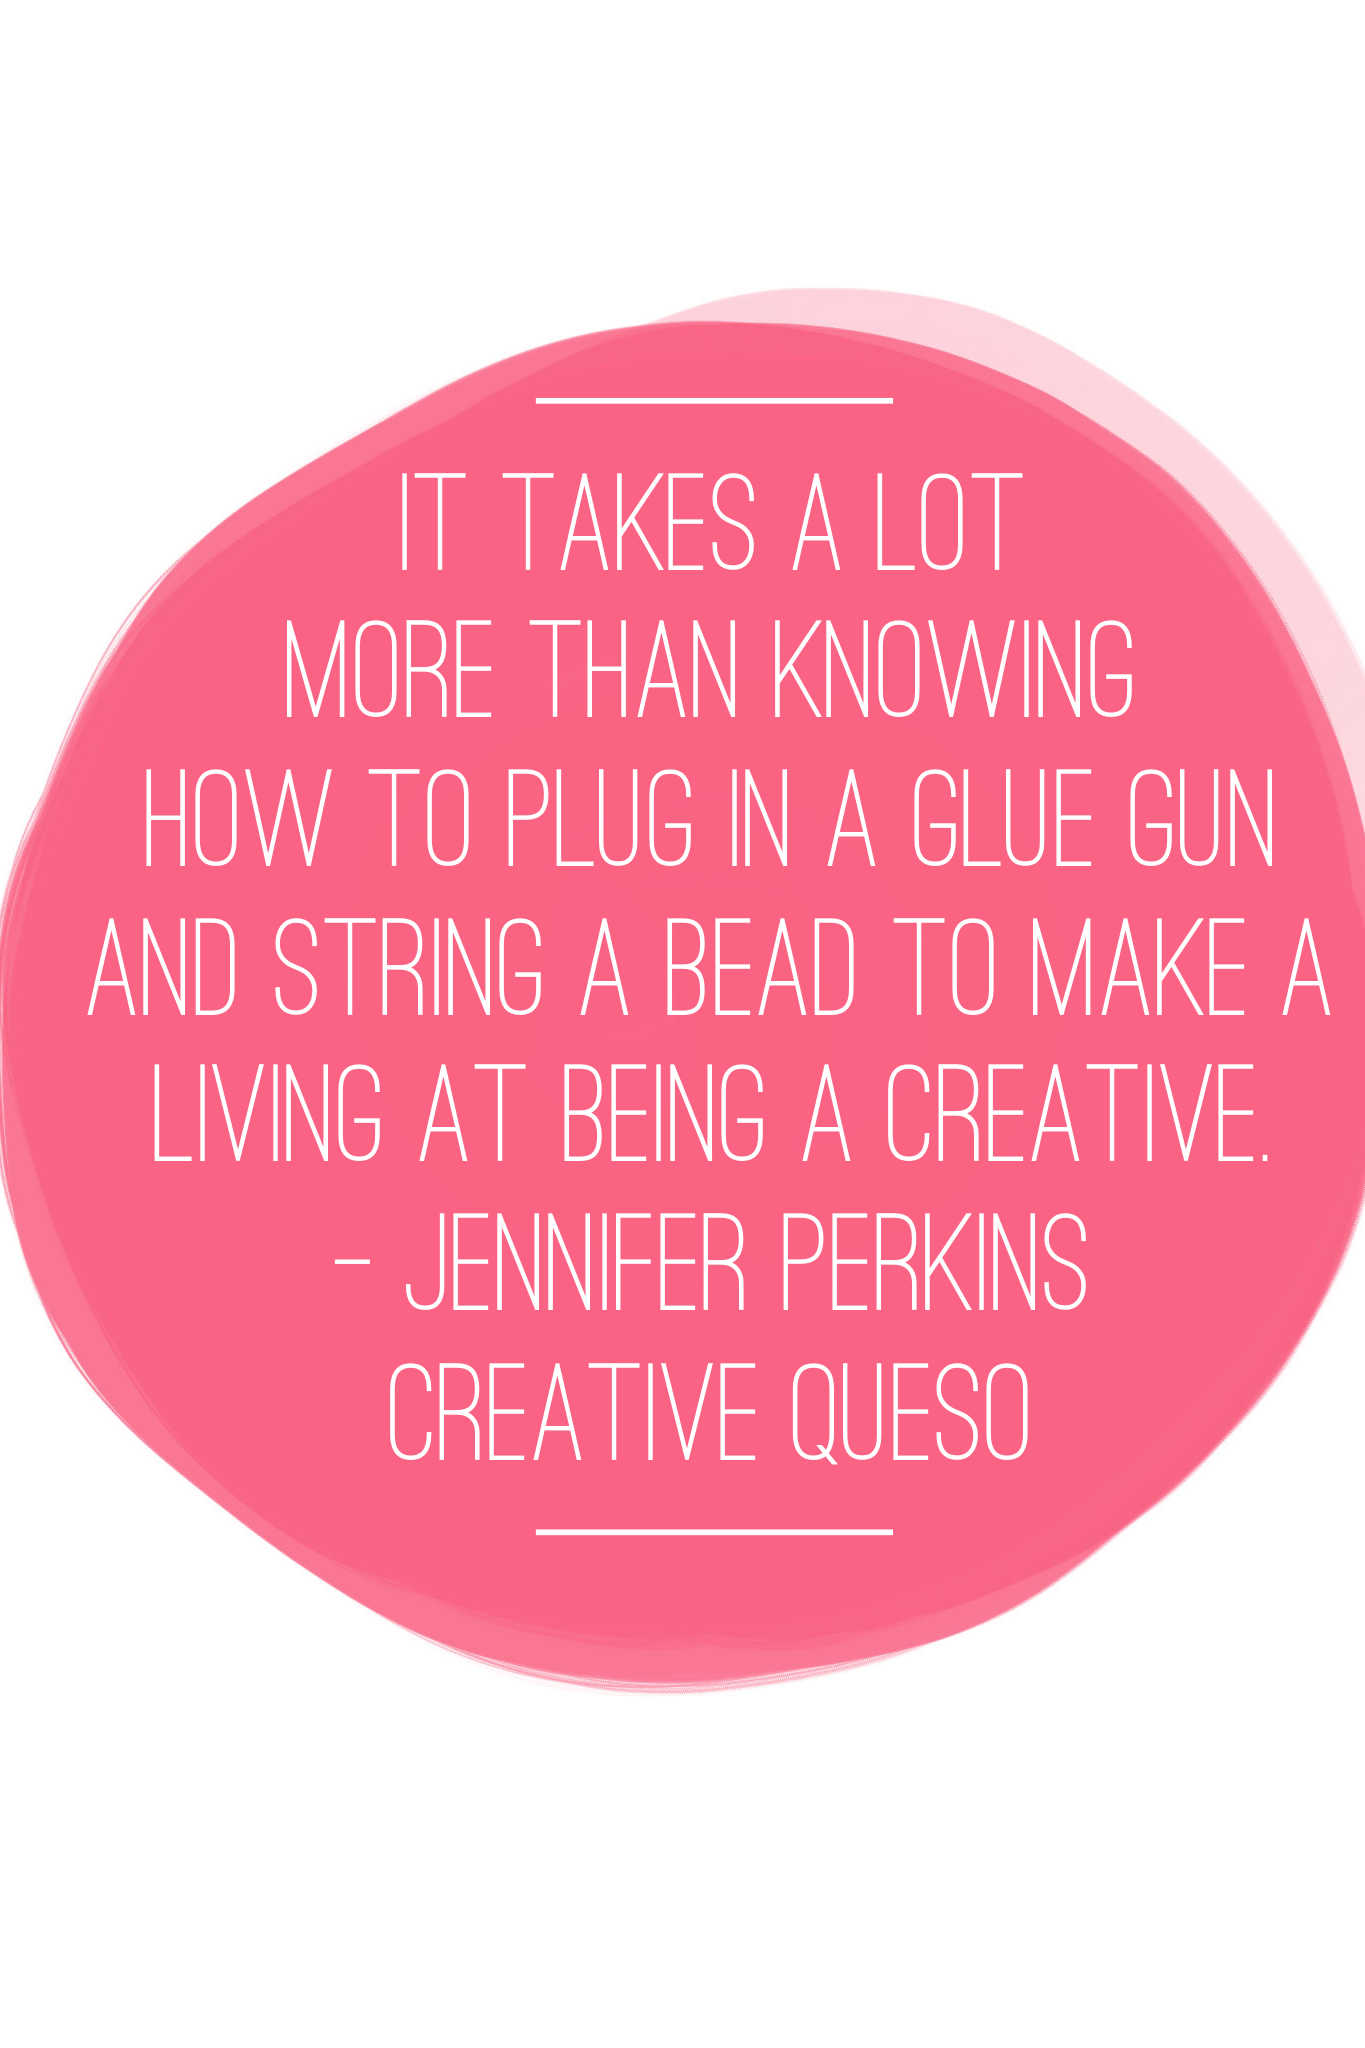 quote from Creative Queso